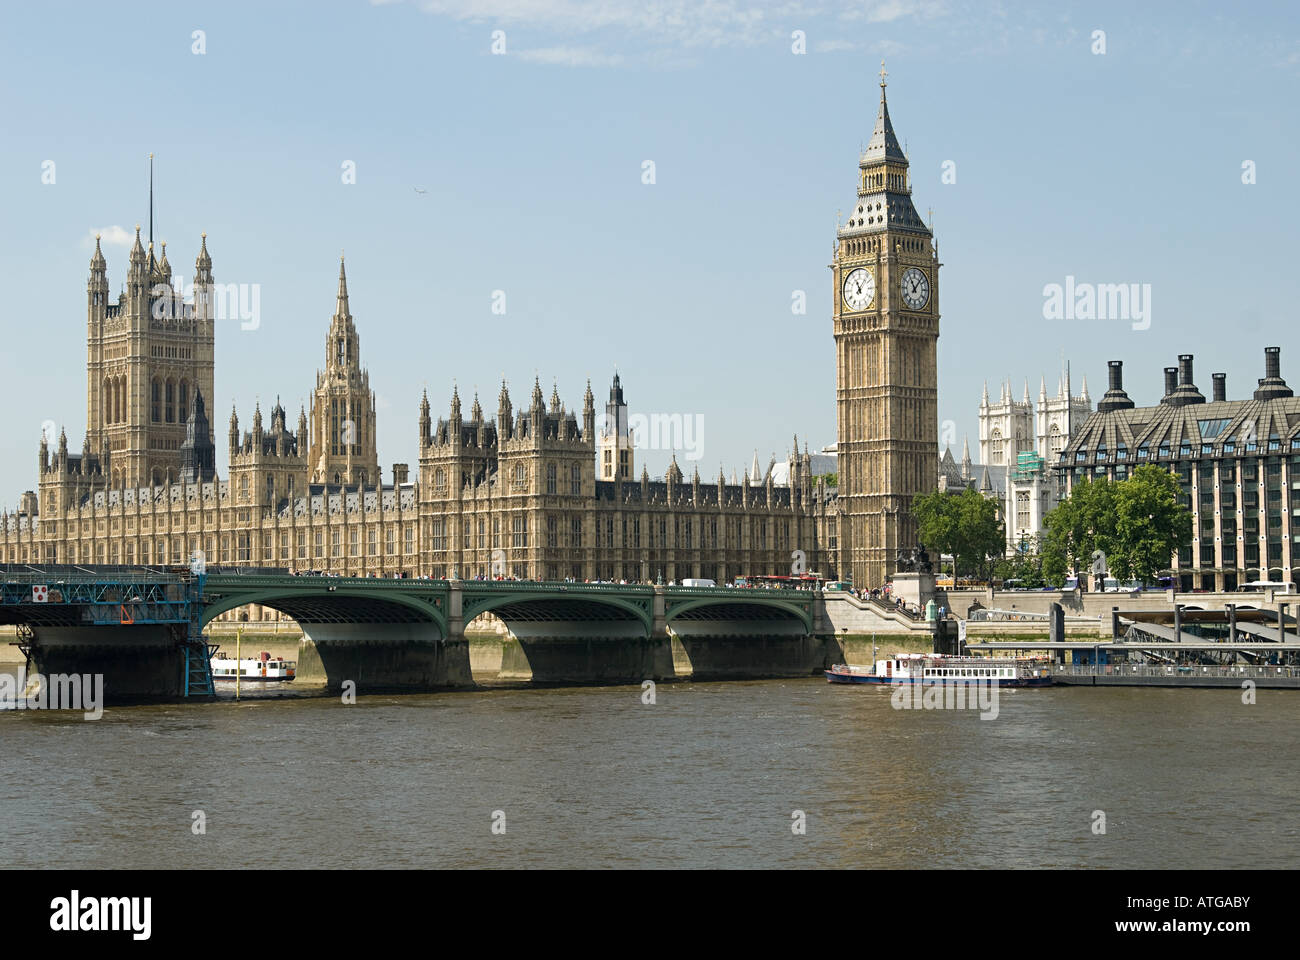 Westminster london - Stock Image